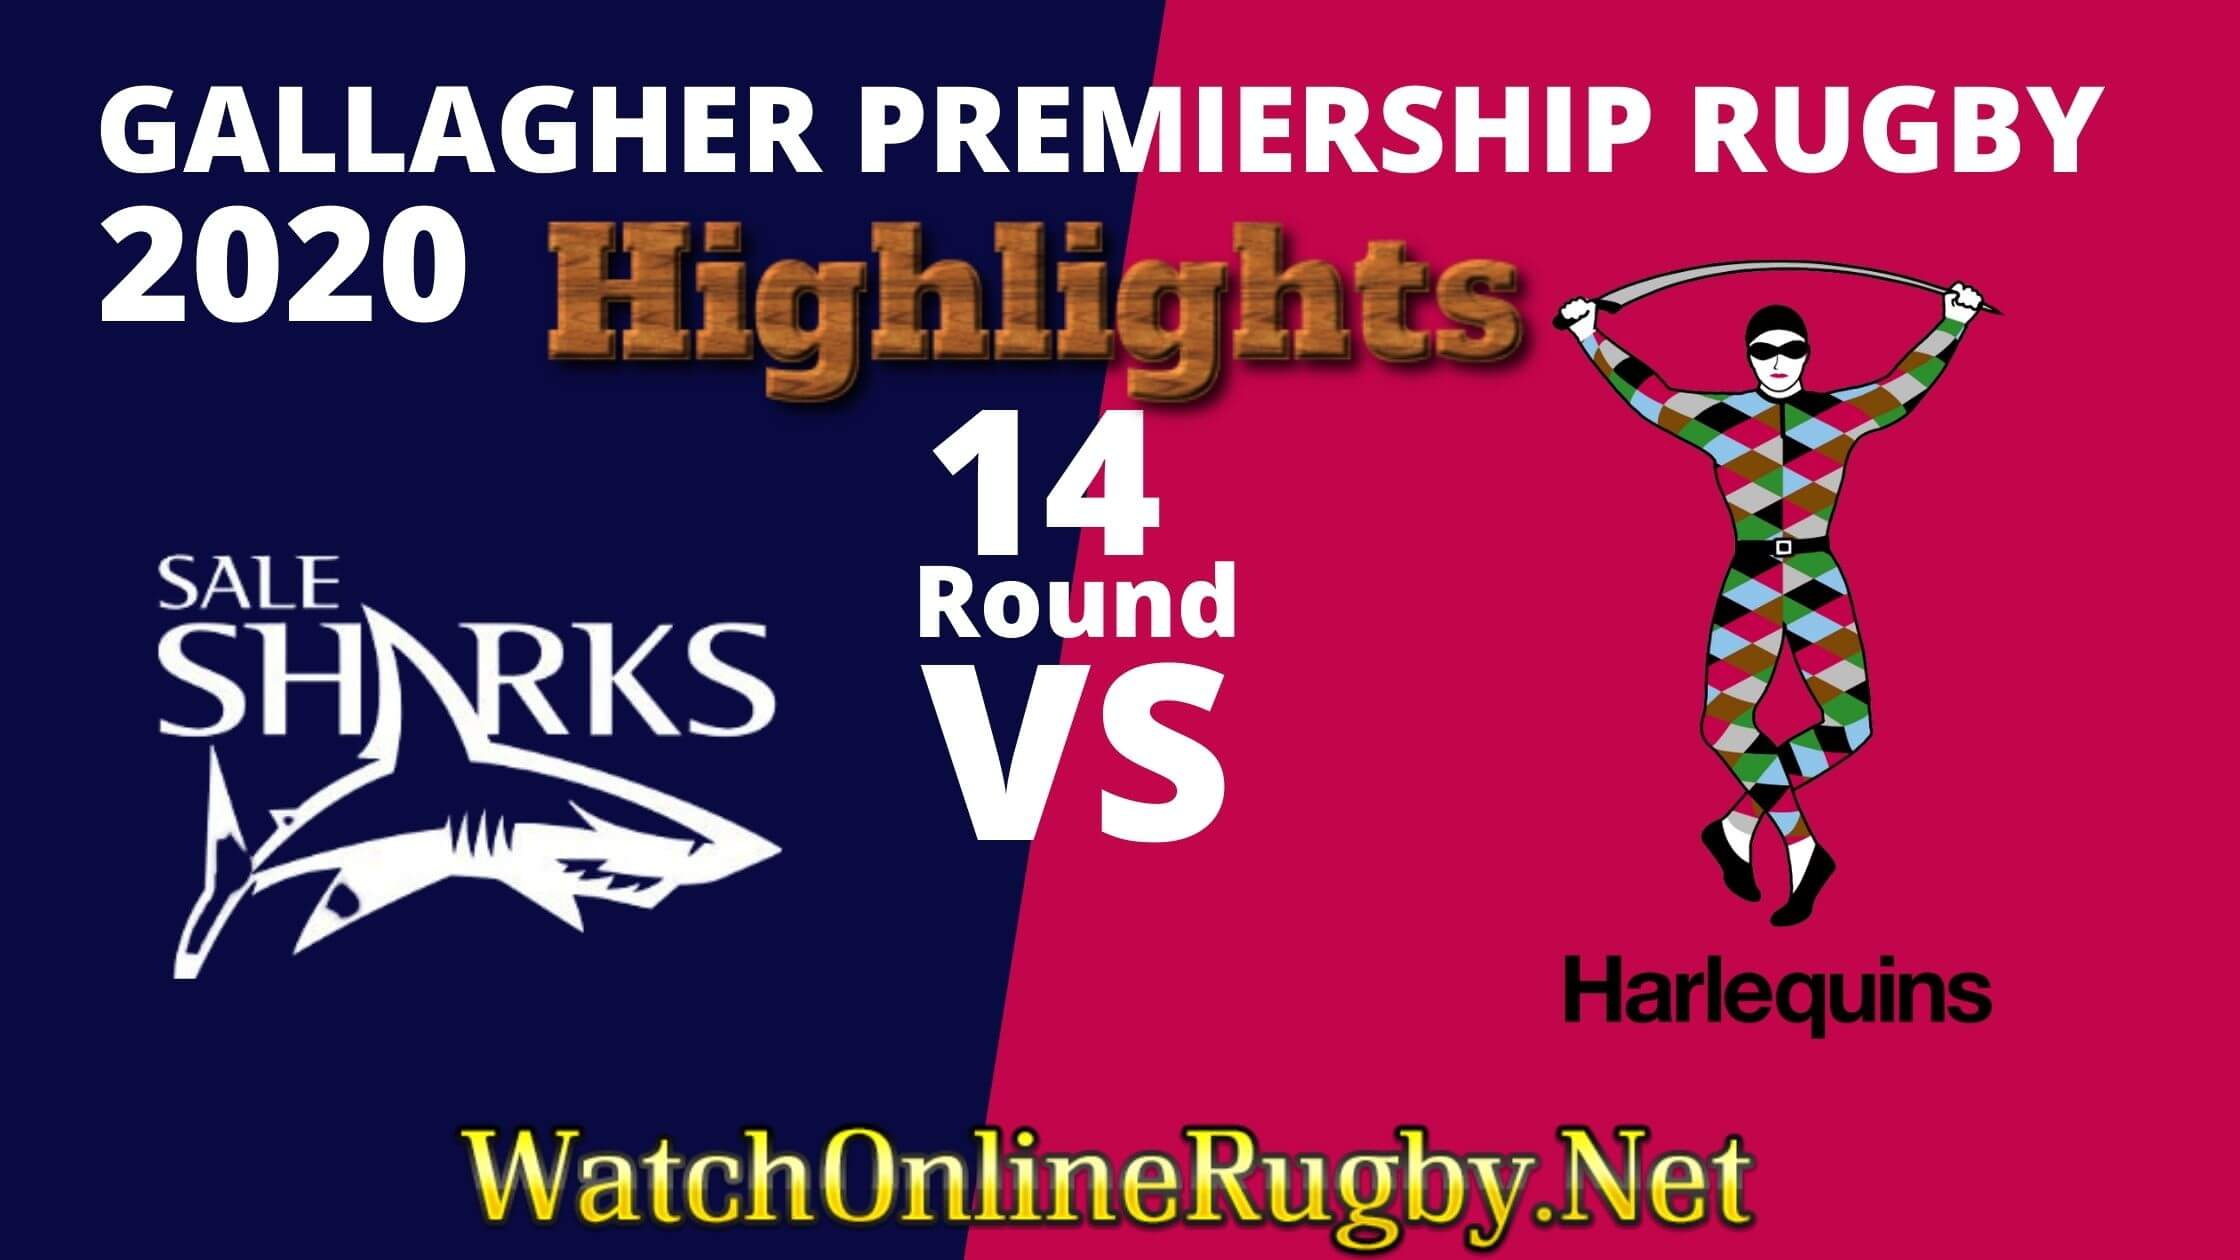 Harlequins Vs Sale Sharks Highlights 2020 Rd 14 Premiership Rugby